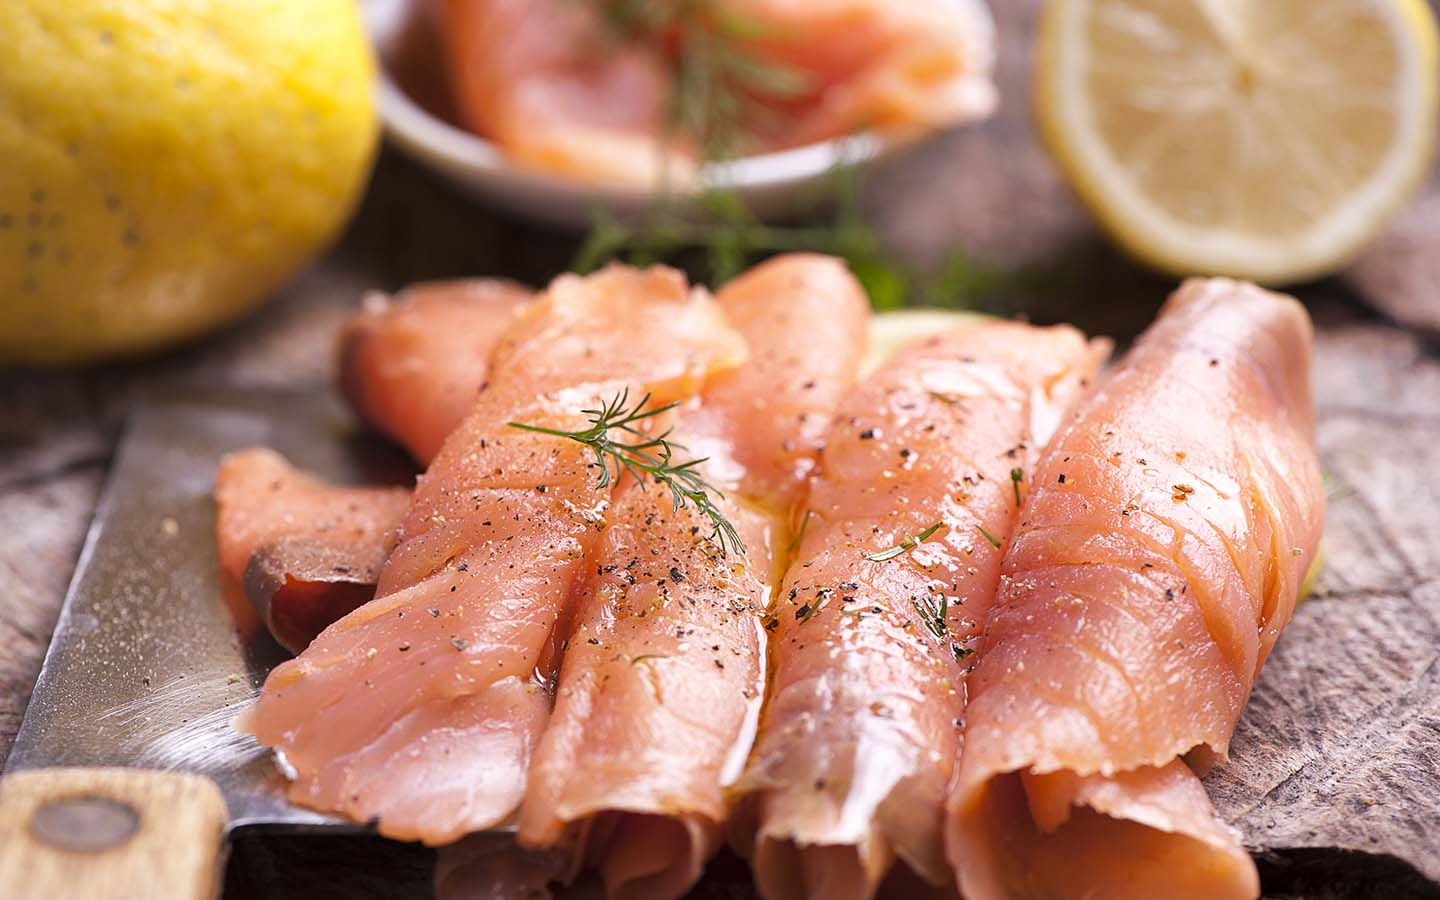 Smoked Salmon at Bu Tafish is the best among seafood restaurants in Jumeirah